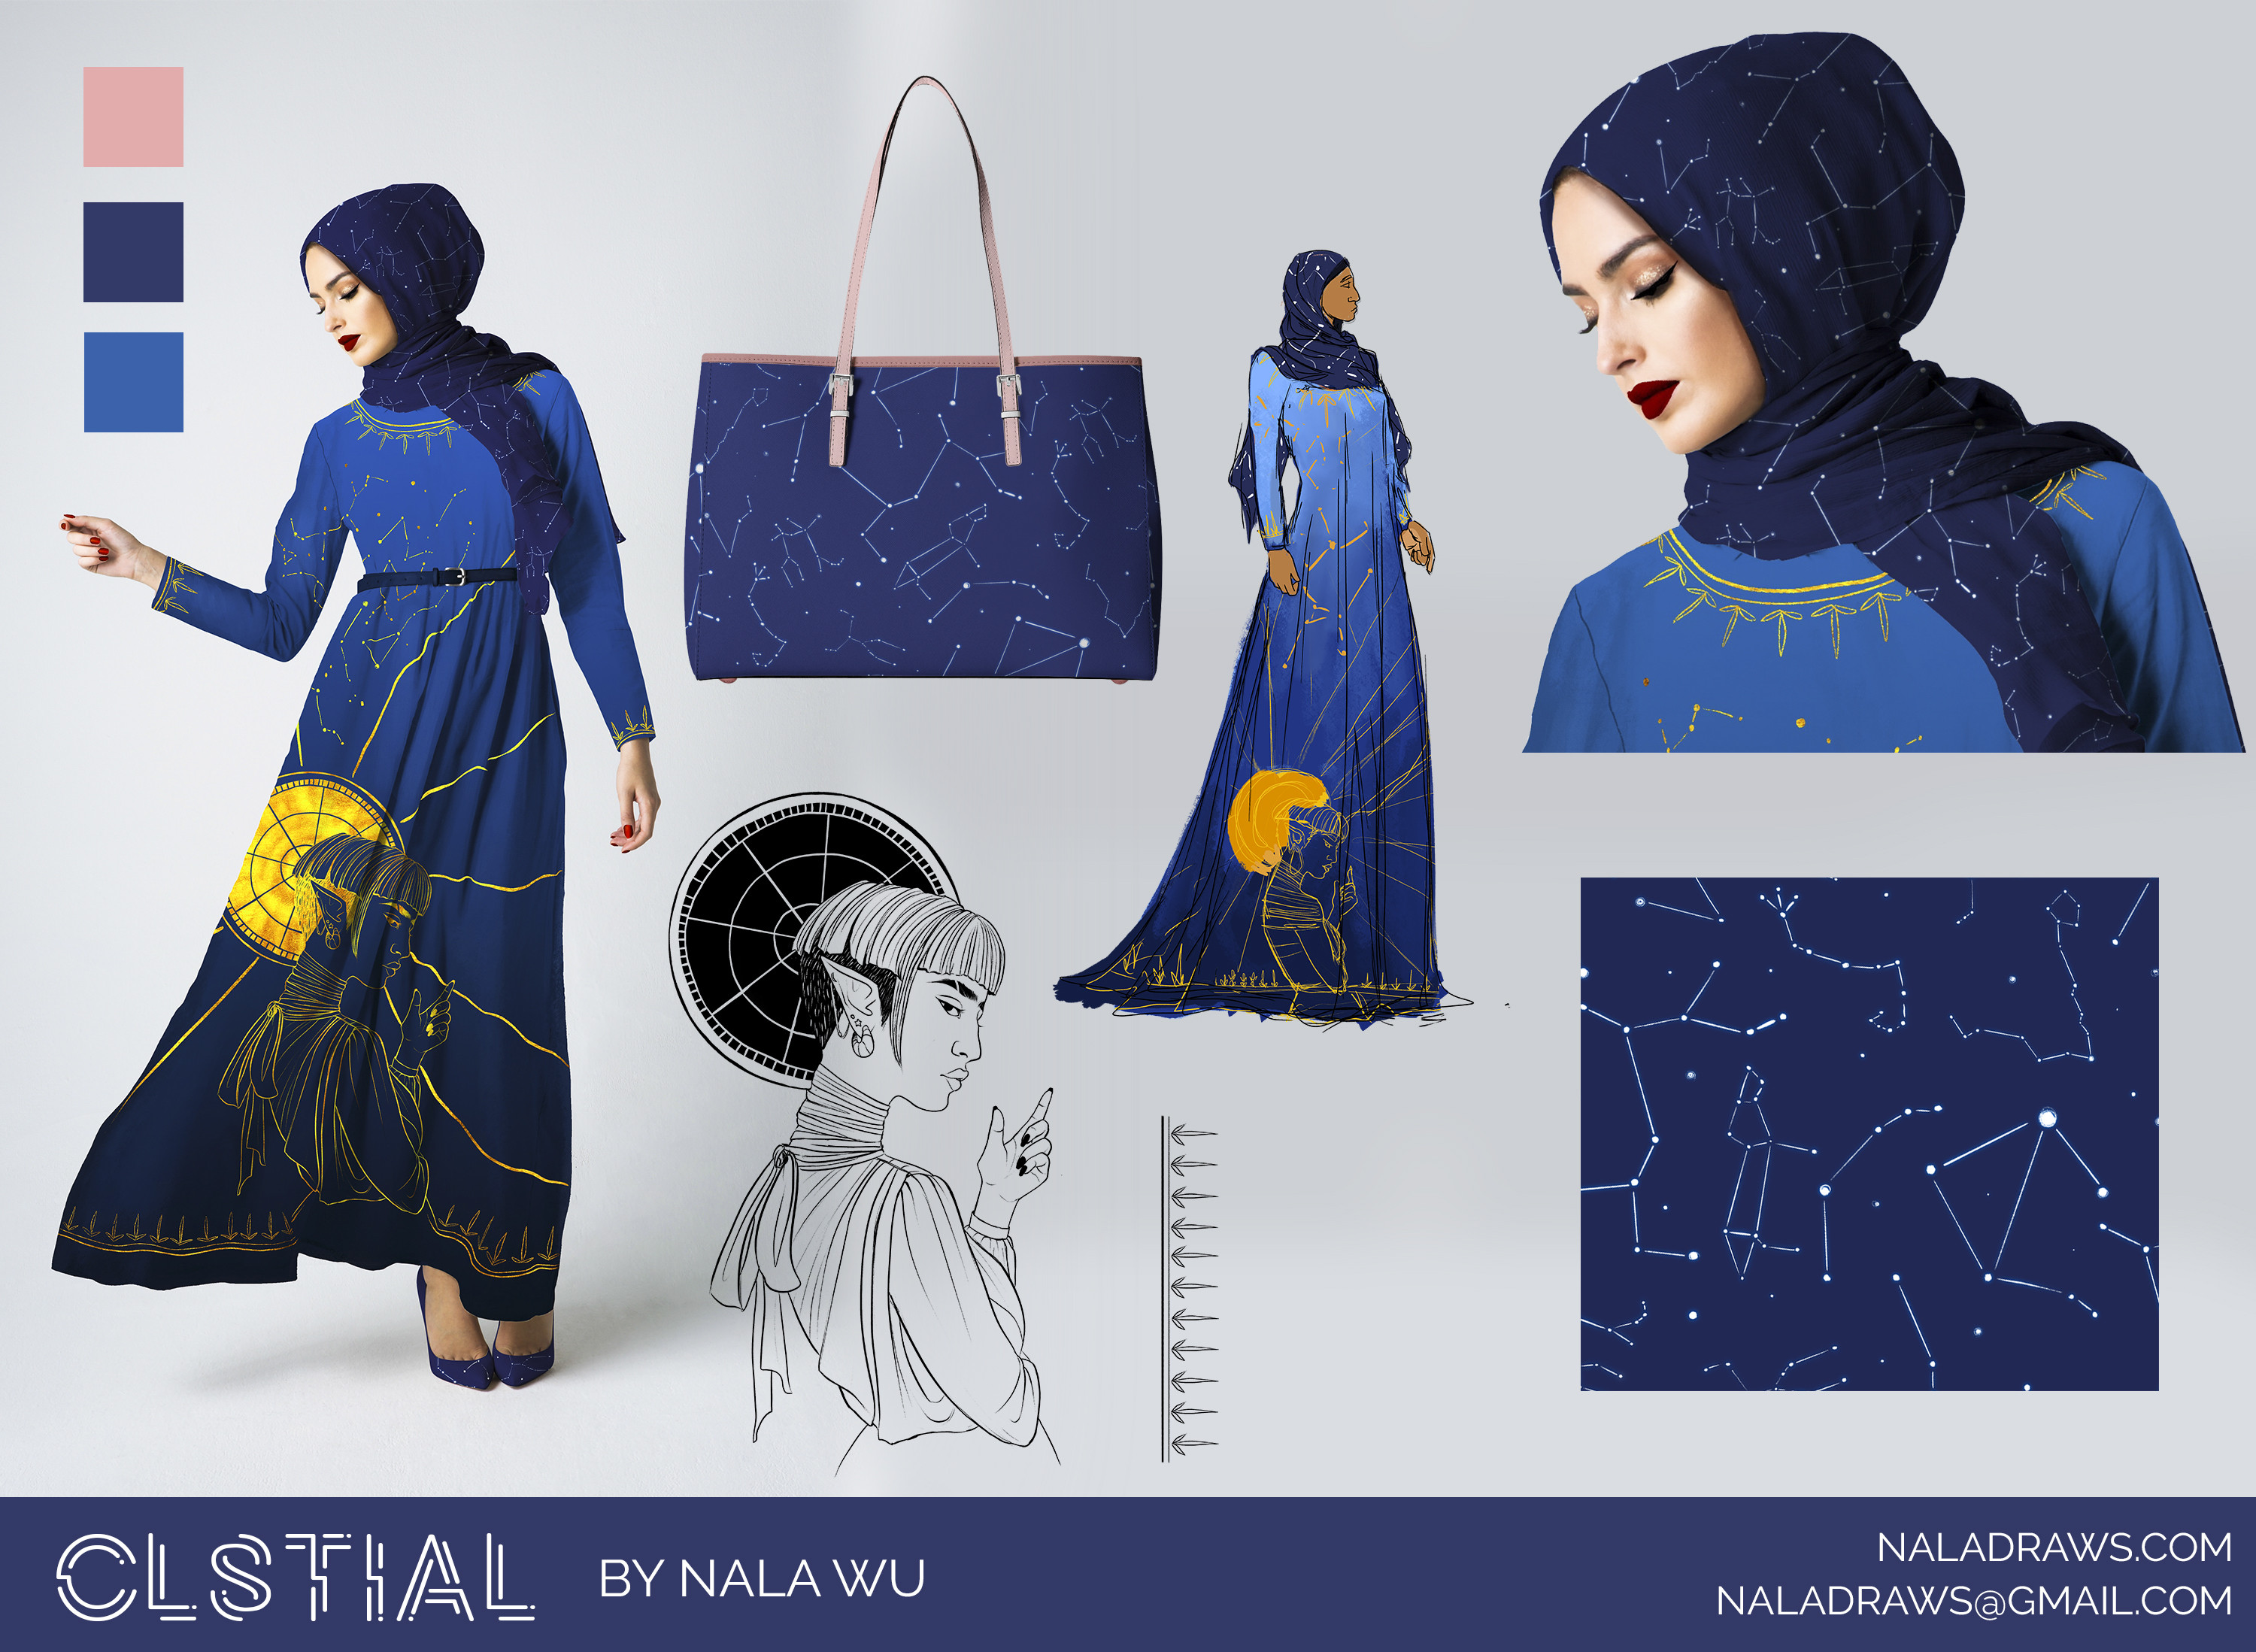 A full mockup page with a concept sketch, the full gown, the line art illustration, the pattern, a closeup of the headscarf, a handbag mockup, and the CLSTIAL repeat pattern itself